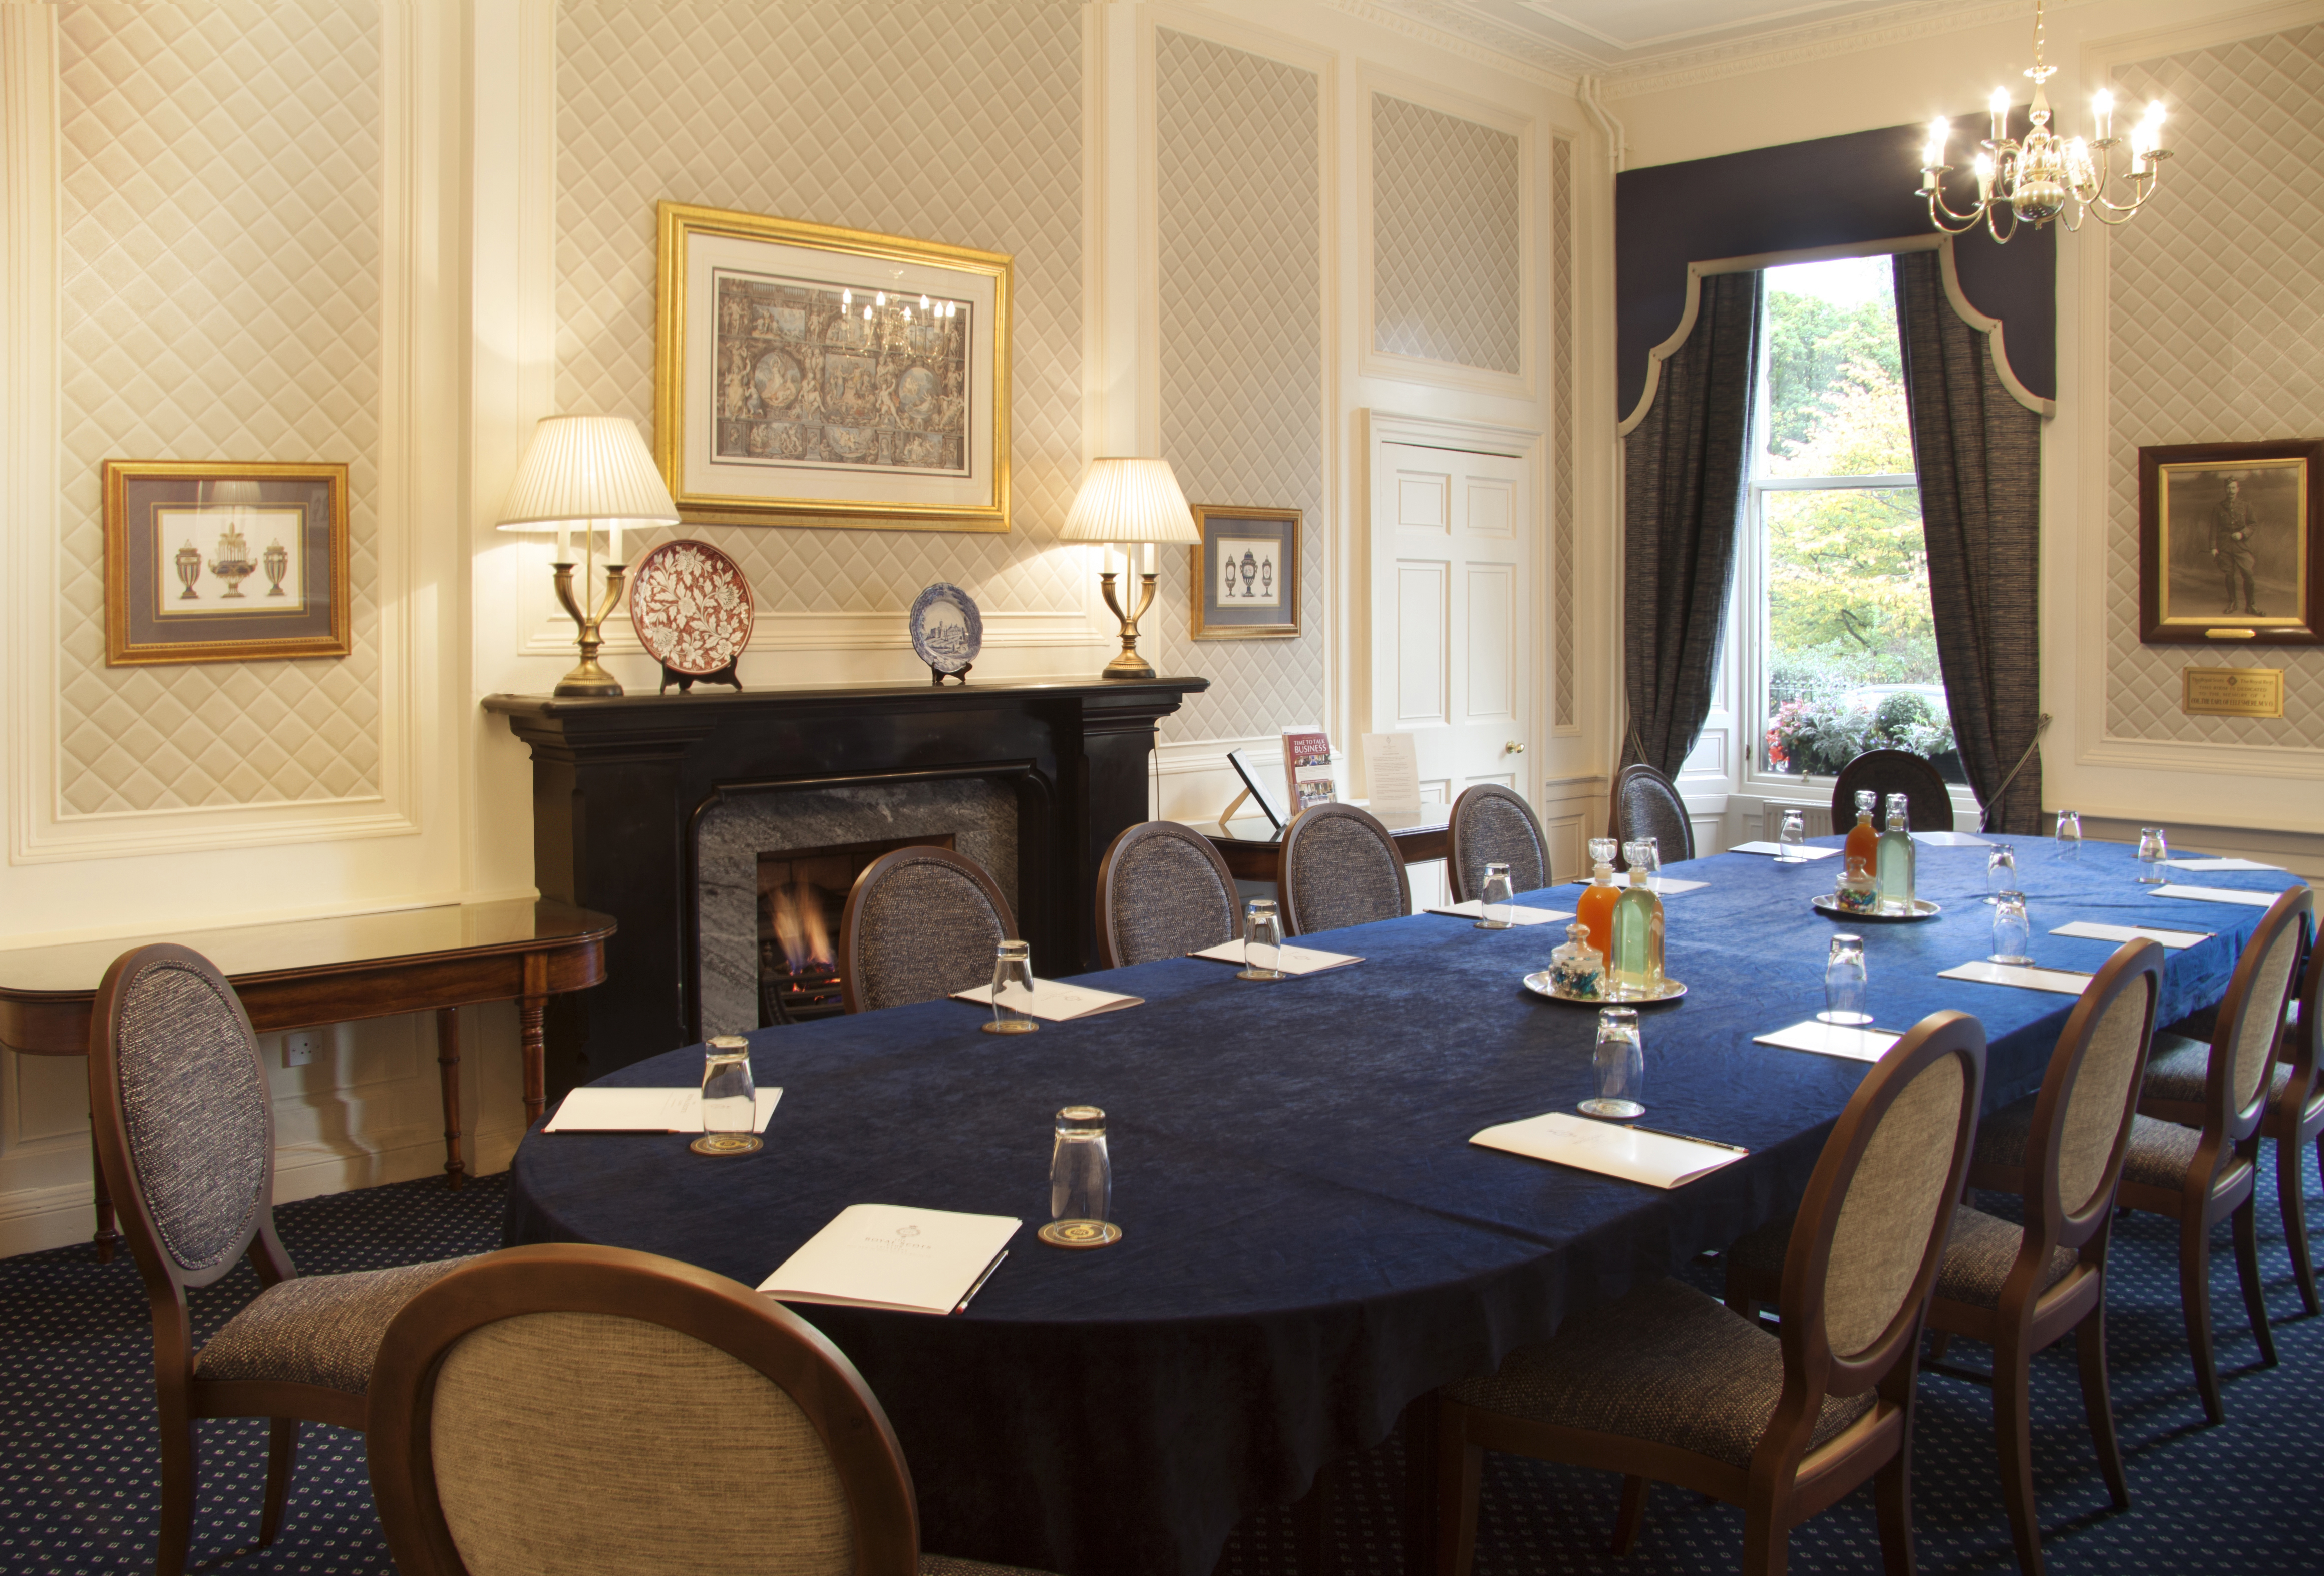 The Ellesmere Room